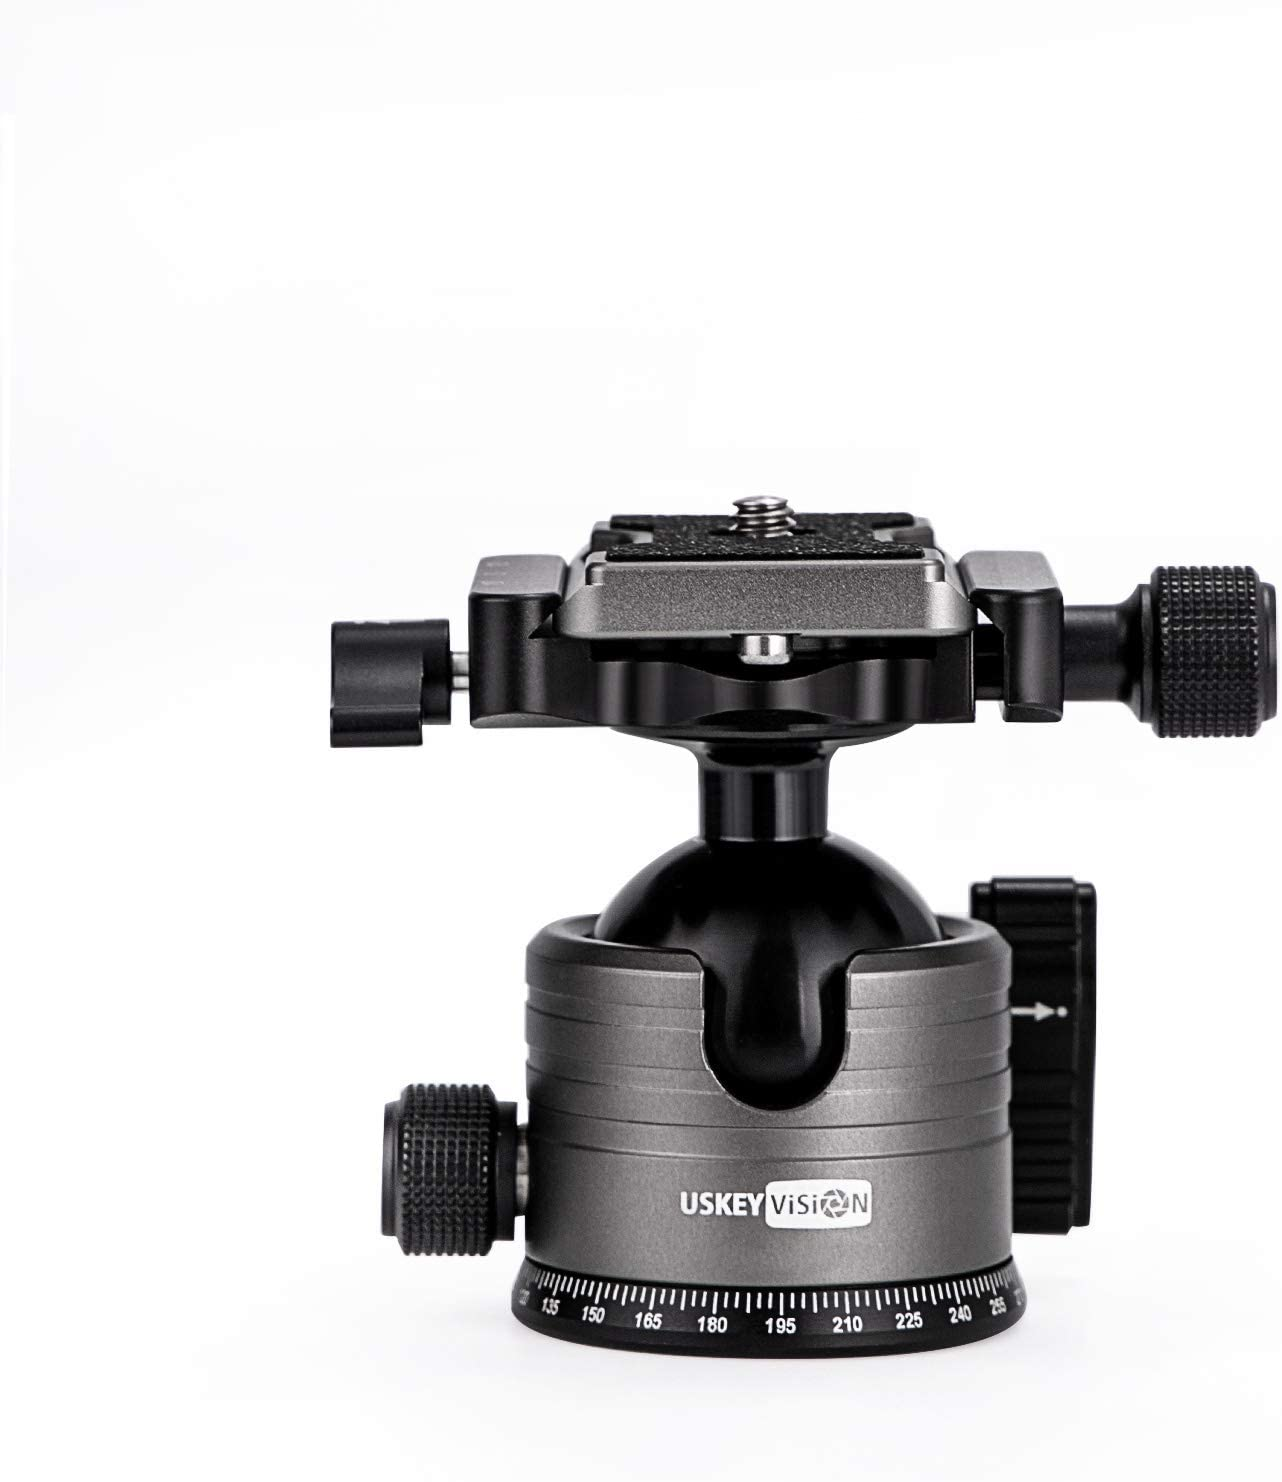 USKEYVISION Tripod Head - The Metal Tripod Ball Head 360 Degree Rotating Panoramic with 1/4 inch Quick Shoe Plate (Senior Grey)